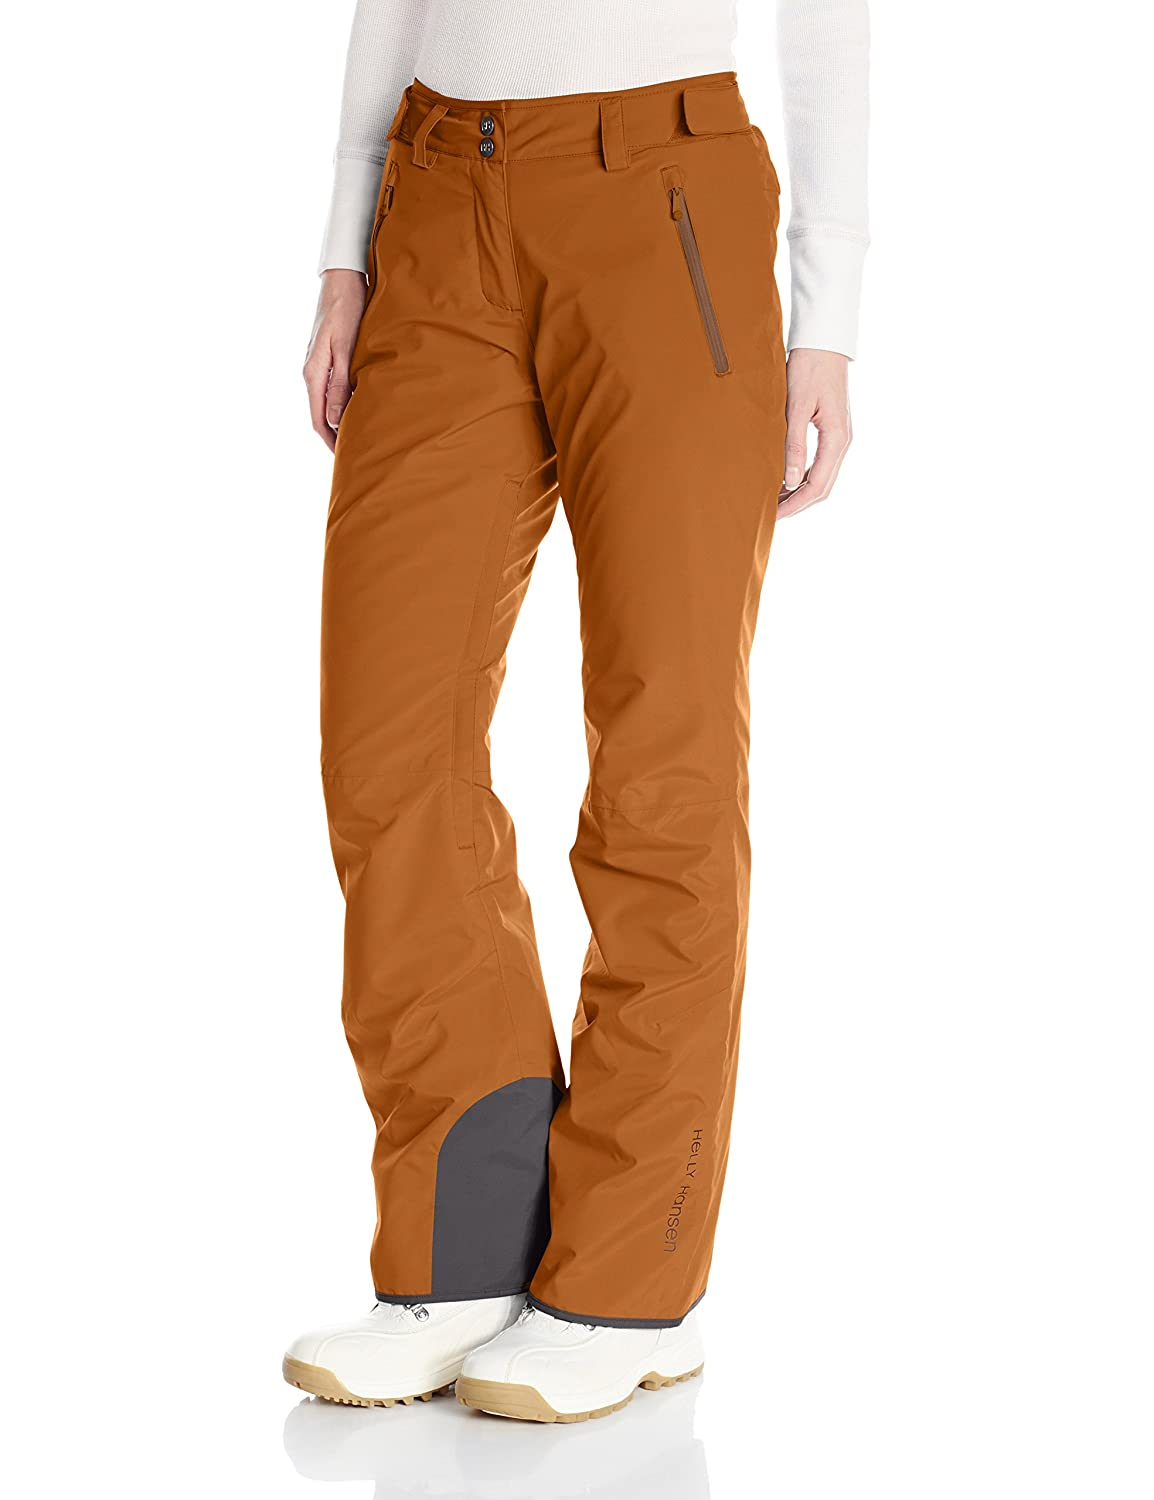 Cinnamon Helly Hansen Women's Legendary Pant